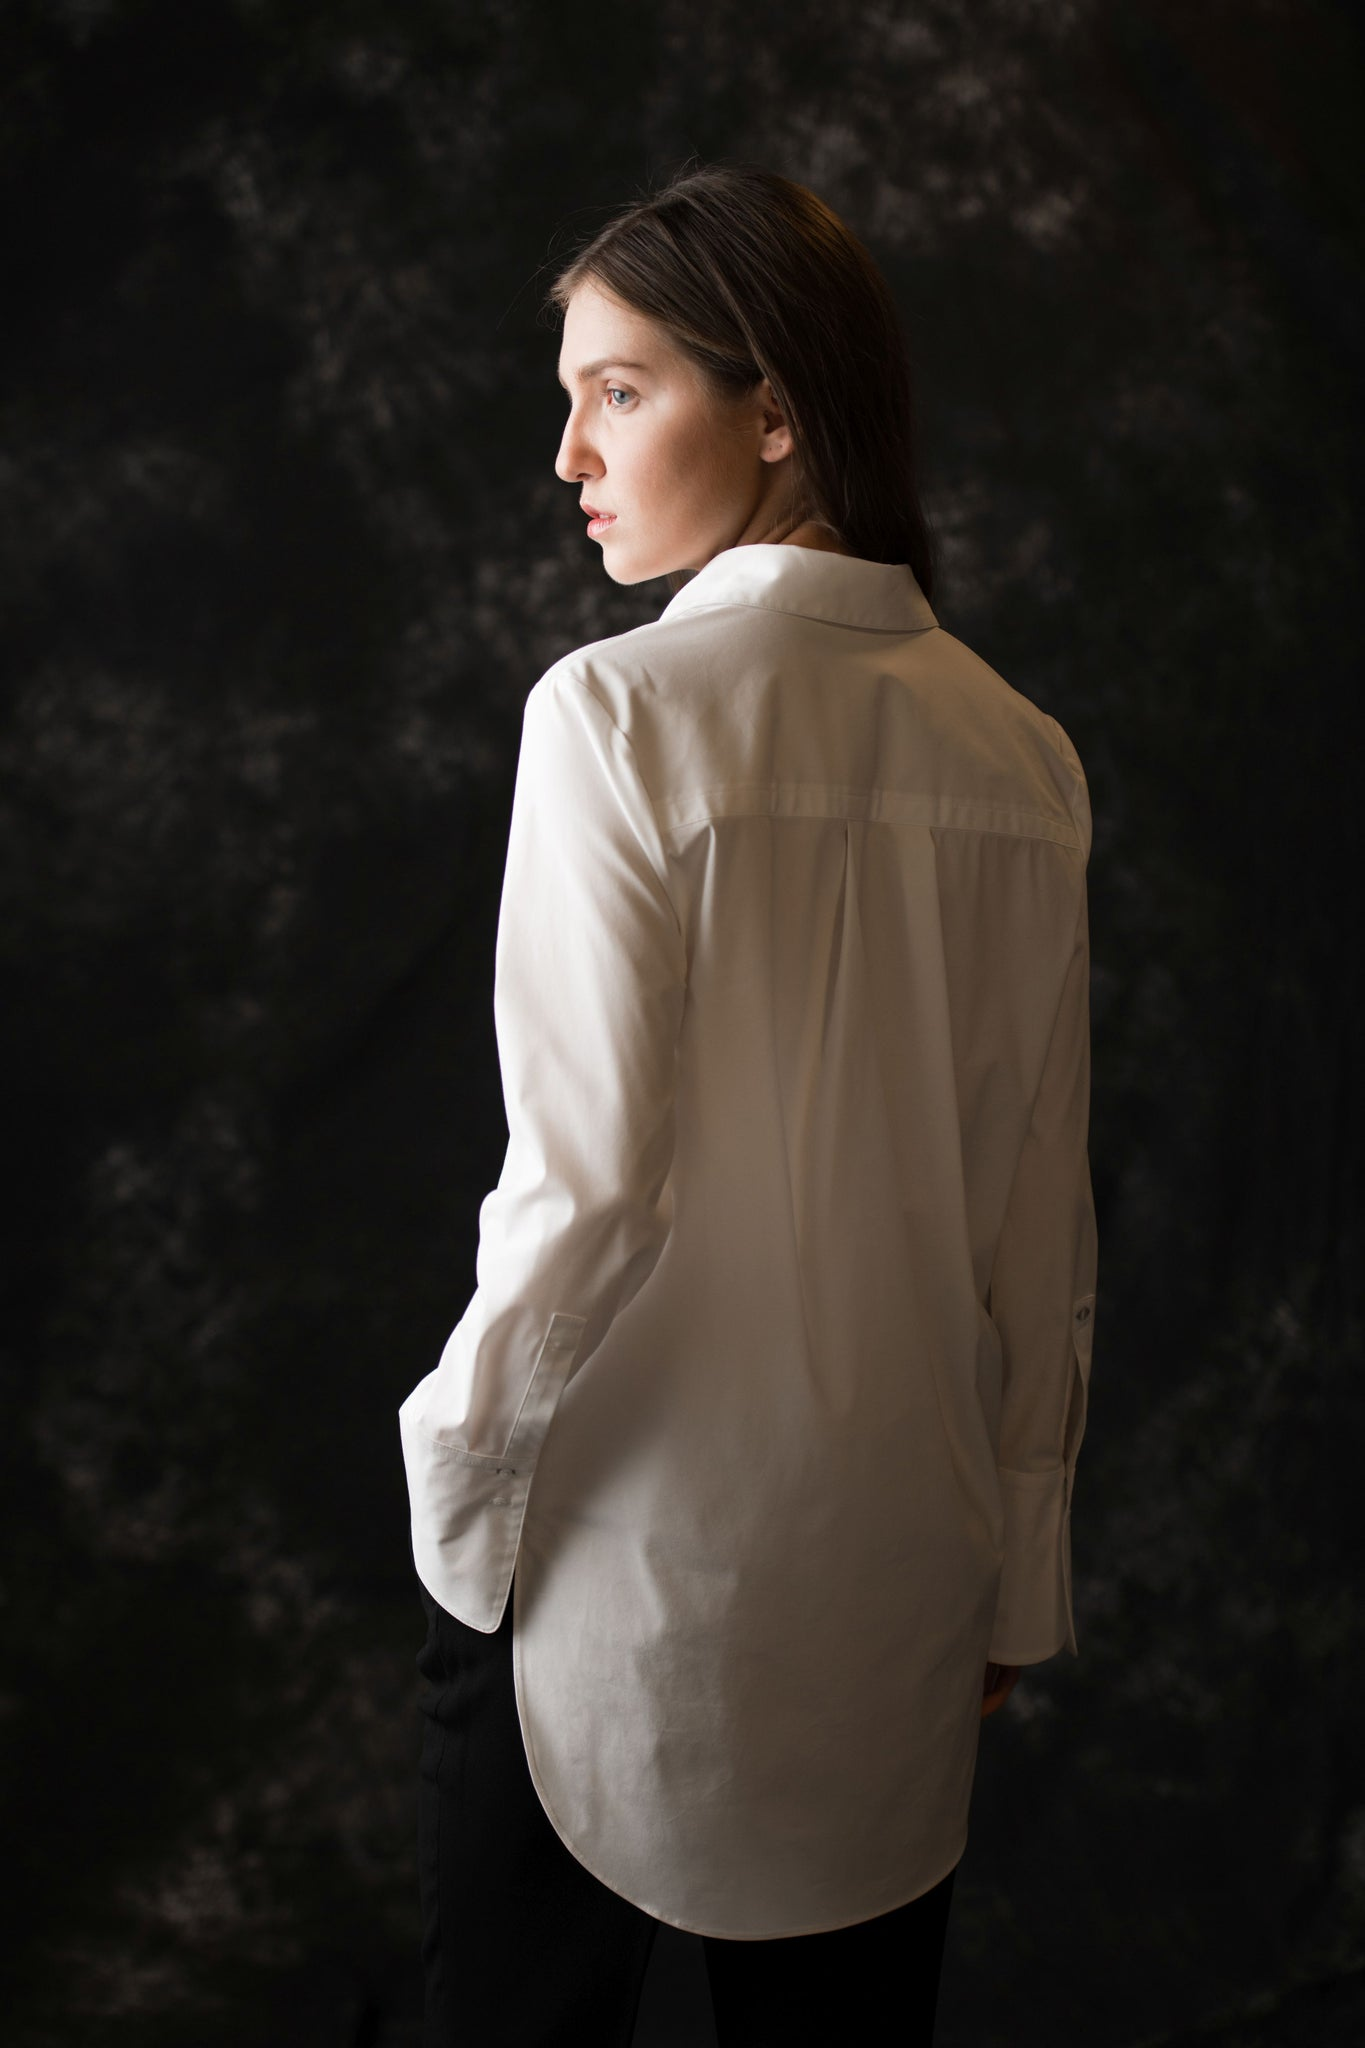 Mercer Pull Over women's white blouse - Less than none Greater than